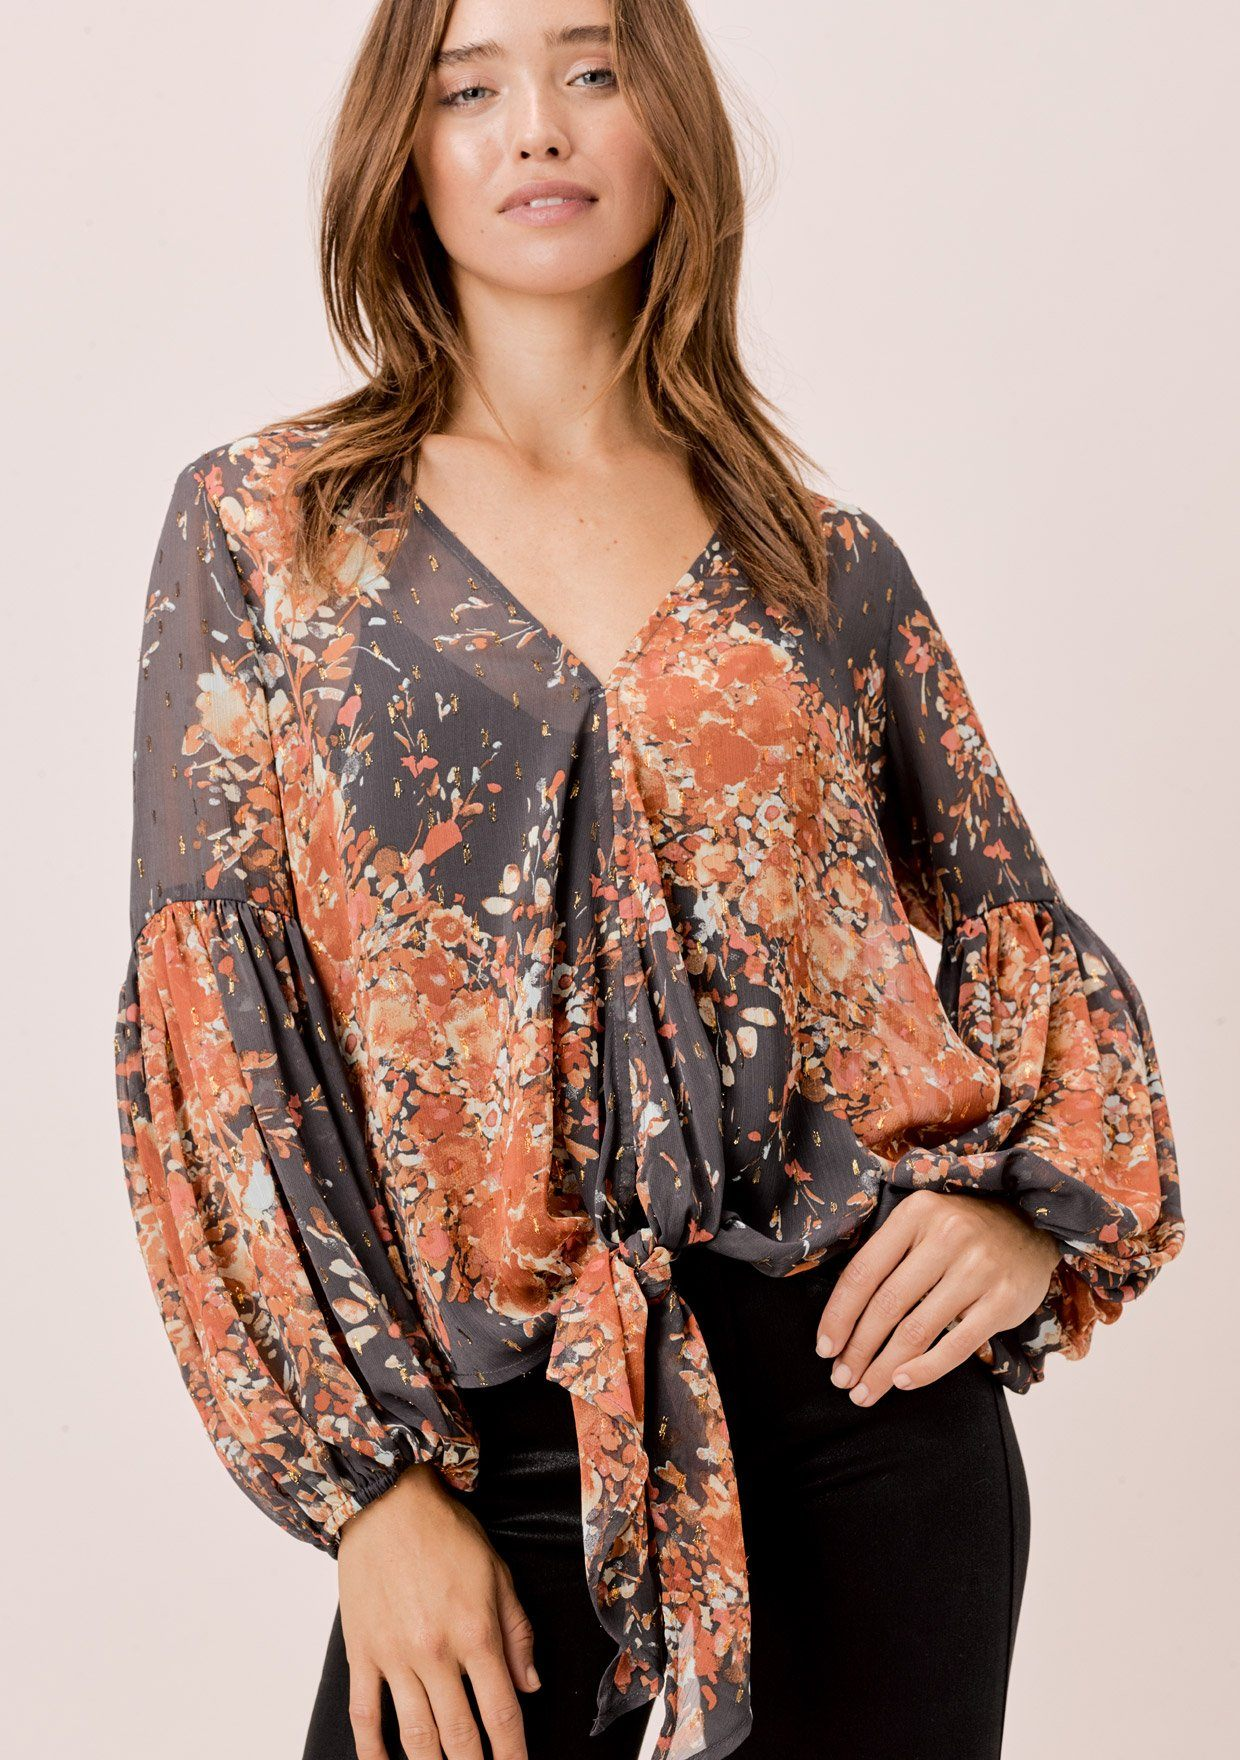 [Color: Grey/Rust/Mint] Lovestitch grey/rust/mint sheer, floral tie front top with volume sleeves.